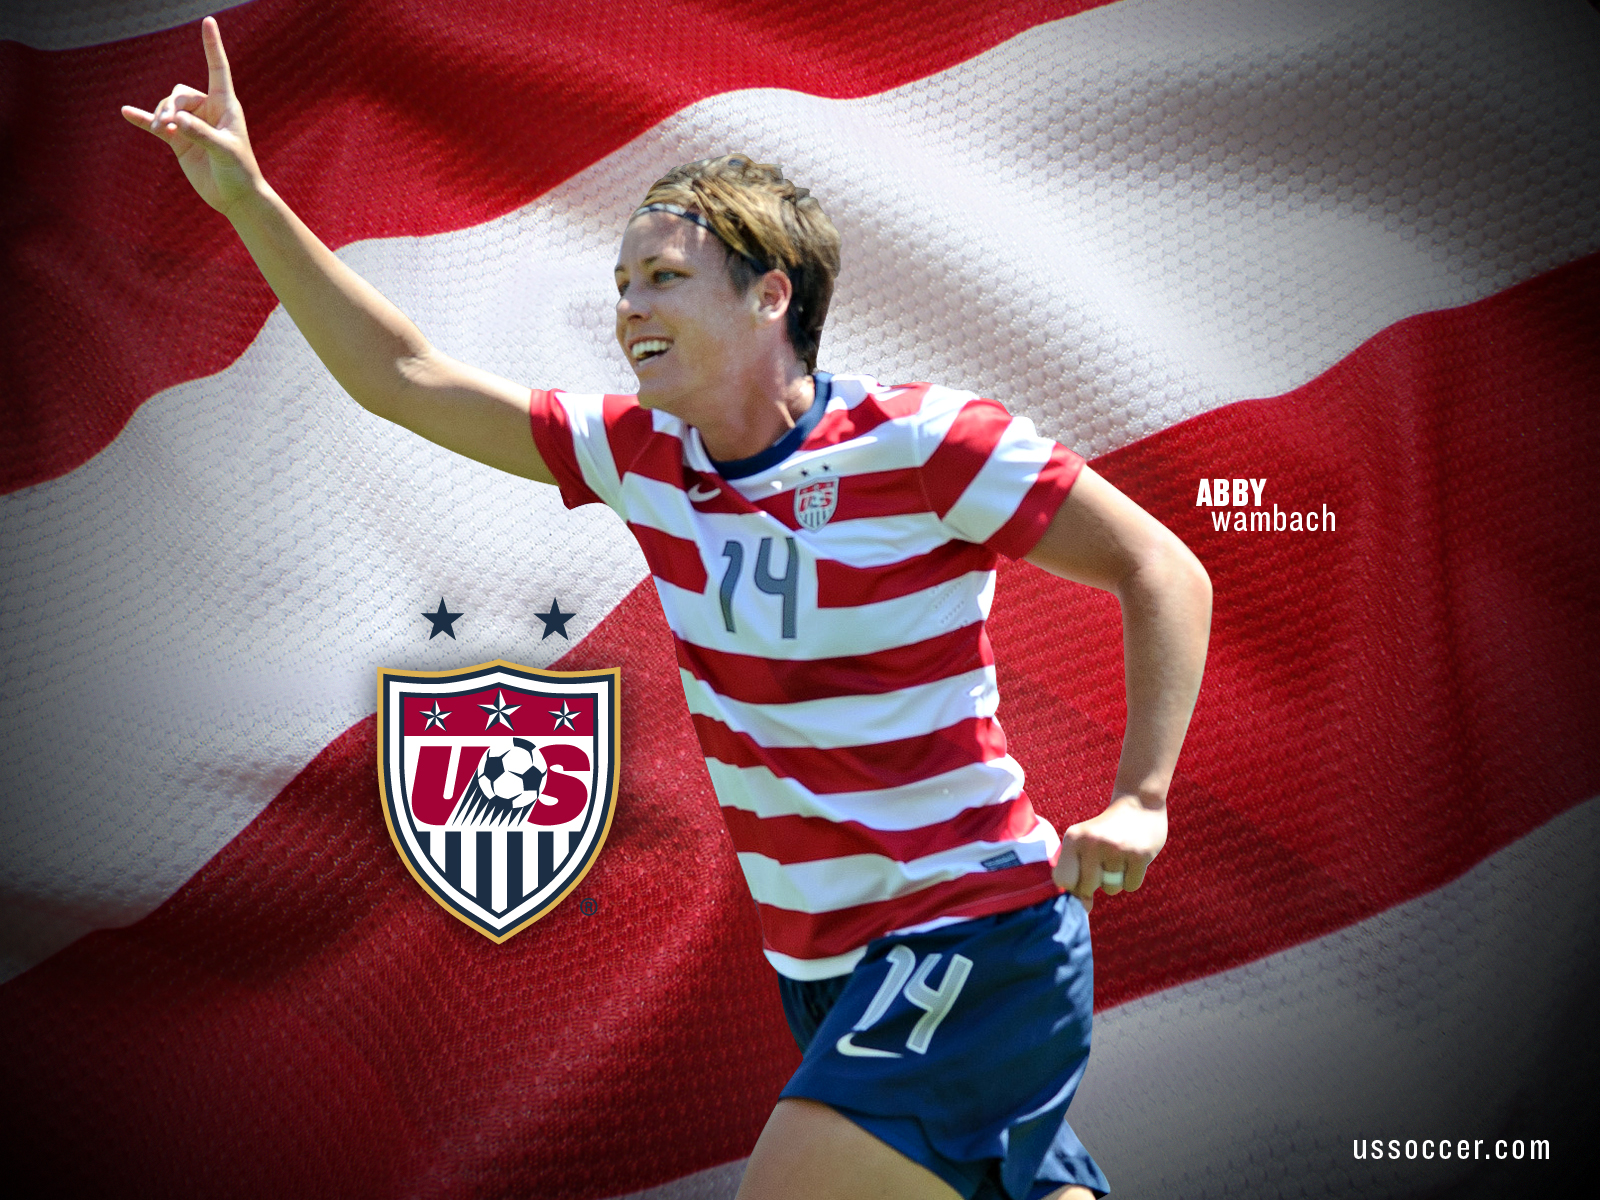 Abby Wambach Soccer Quotes Soc Wnt 2012Wallpaper 1600X1200 Abby 1600x1200